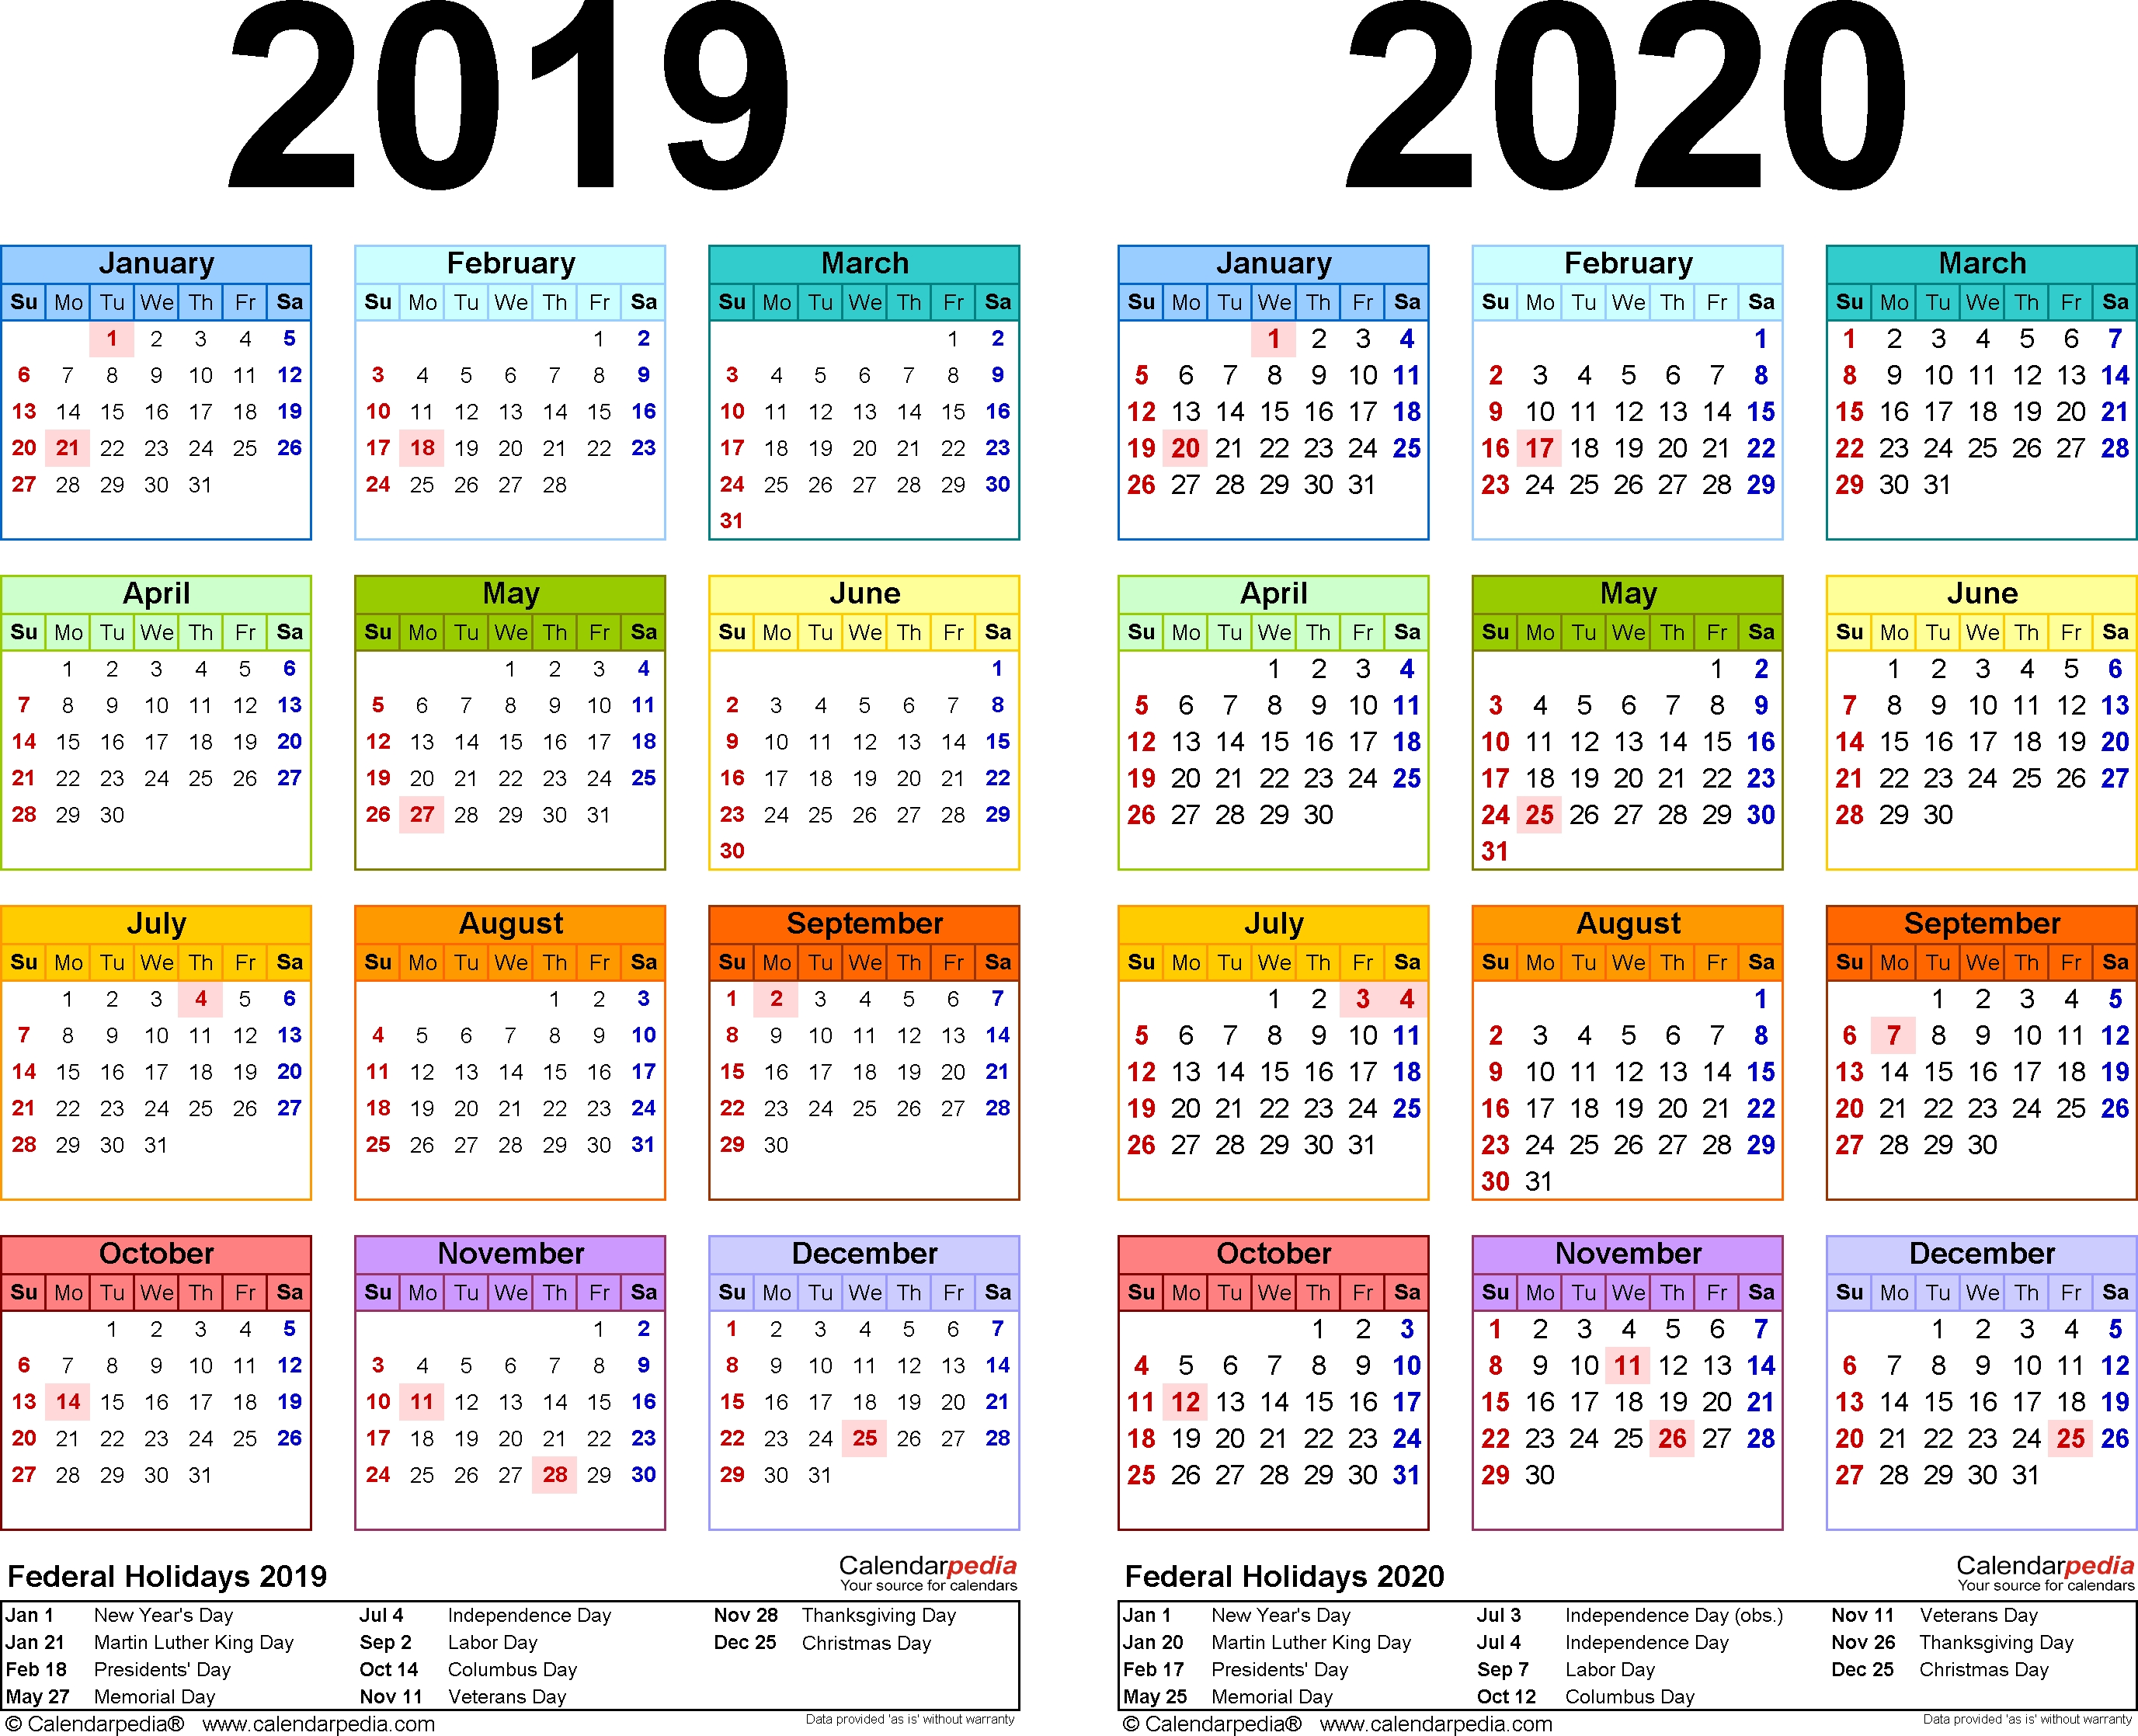 2019-2020 Calendar - Free Printable Two-Year Excel Calendars-Fill In The Blank July 2919 Calendar